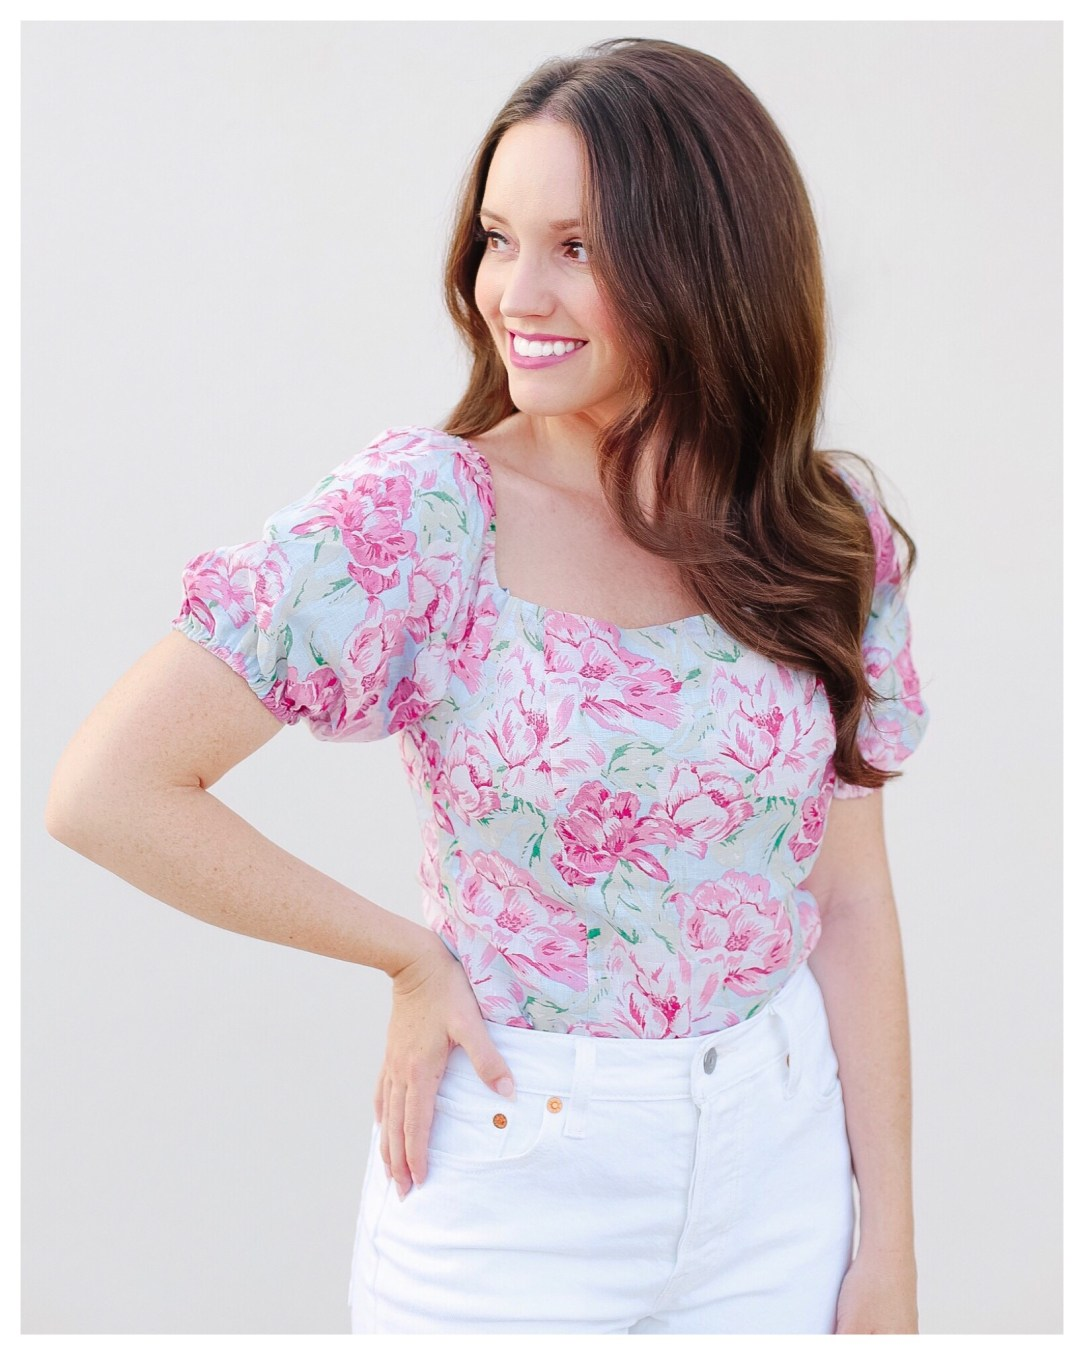 WAYF Sky Blue Floral Top on FiveFootFeminine